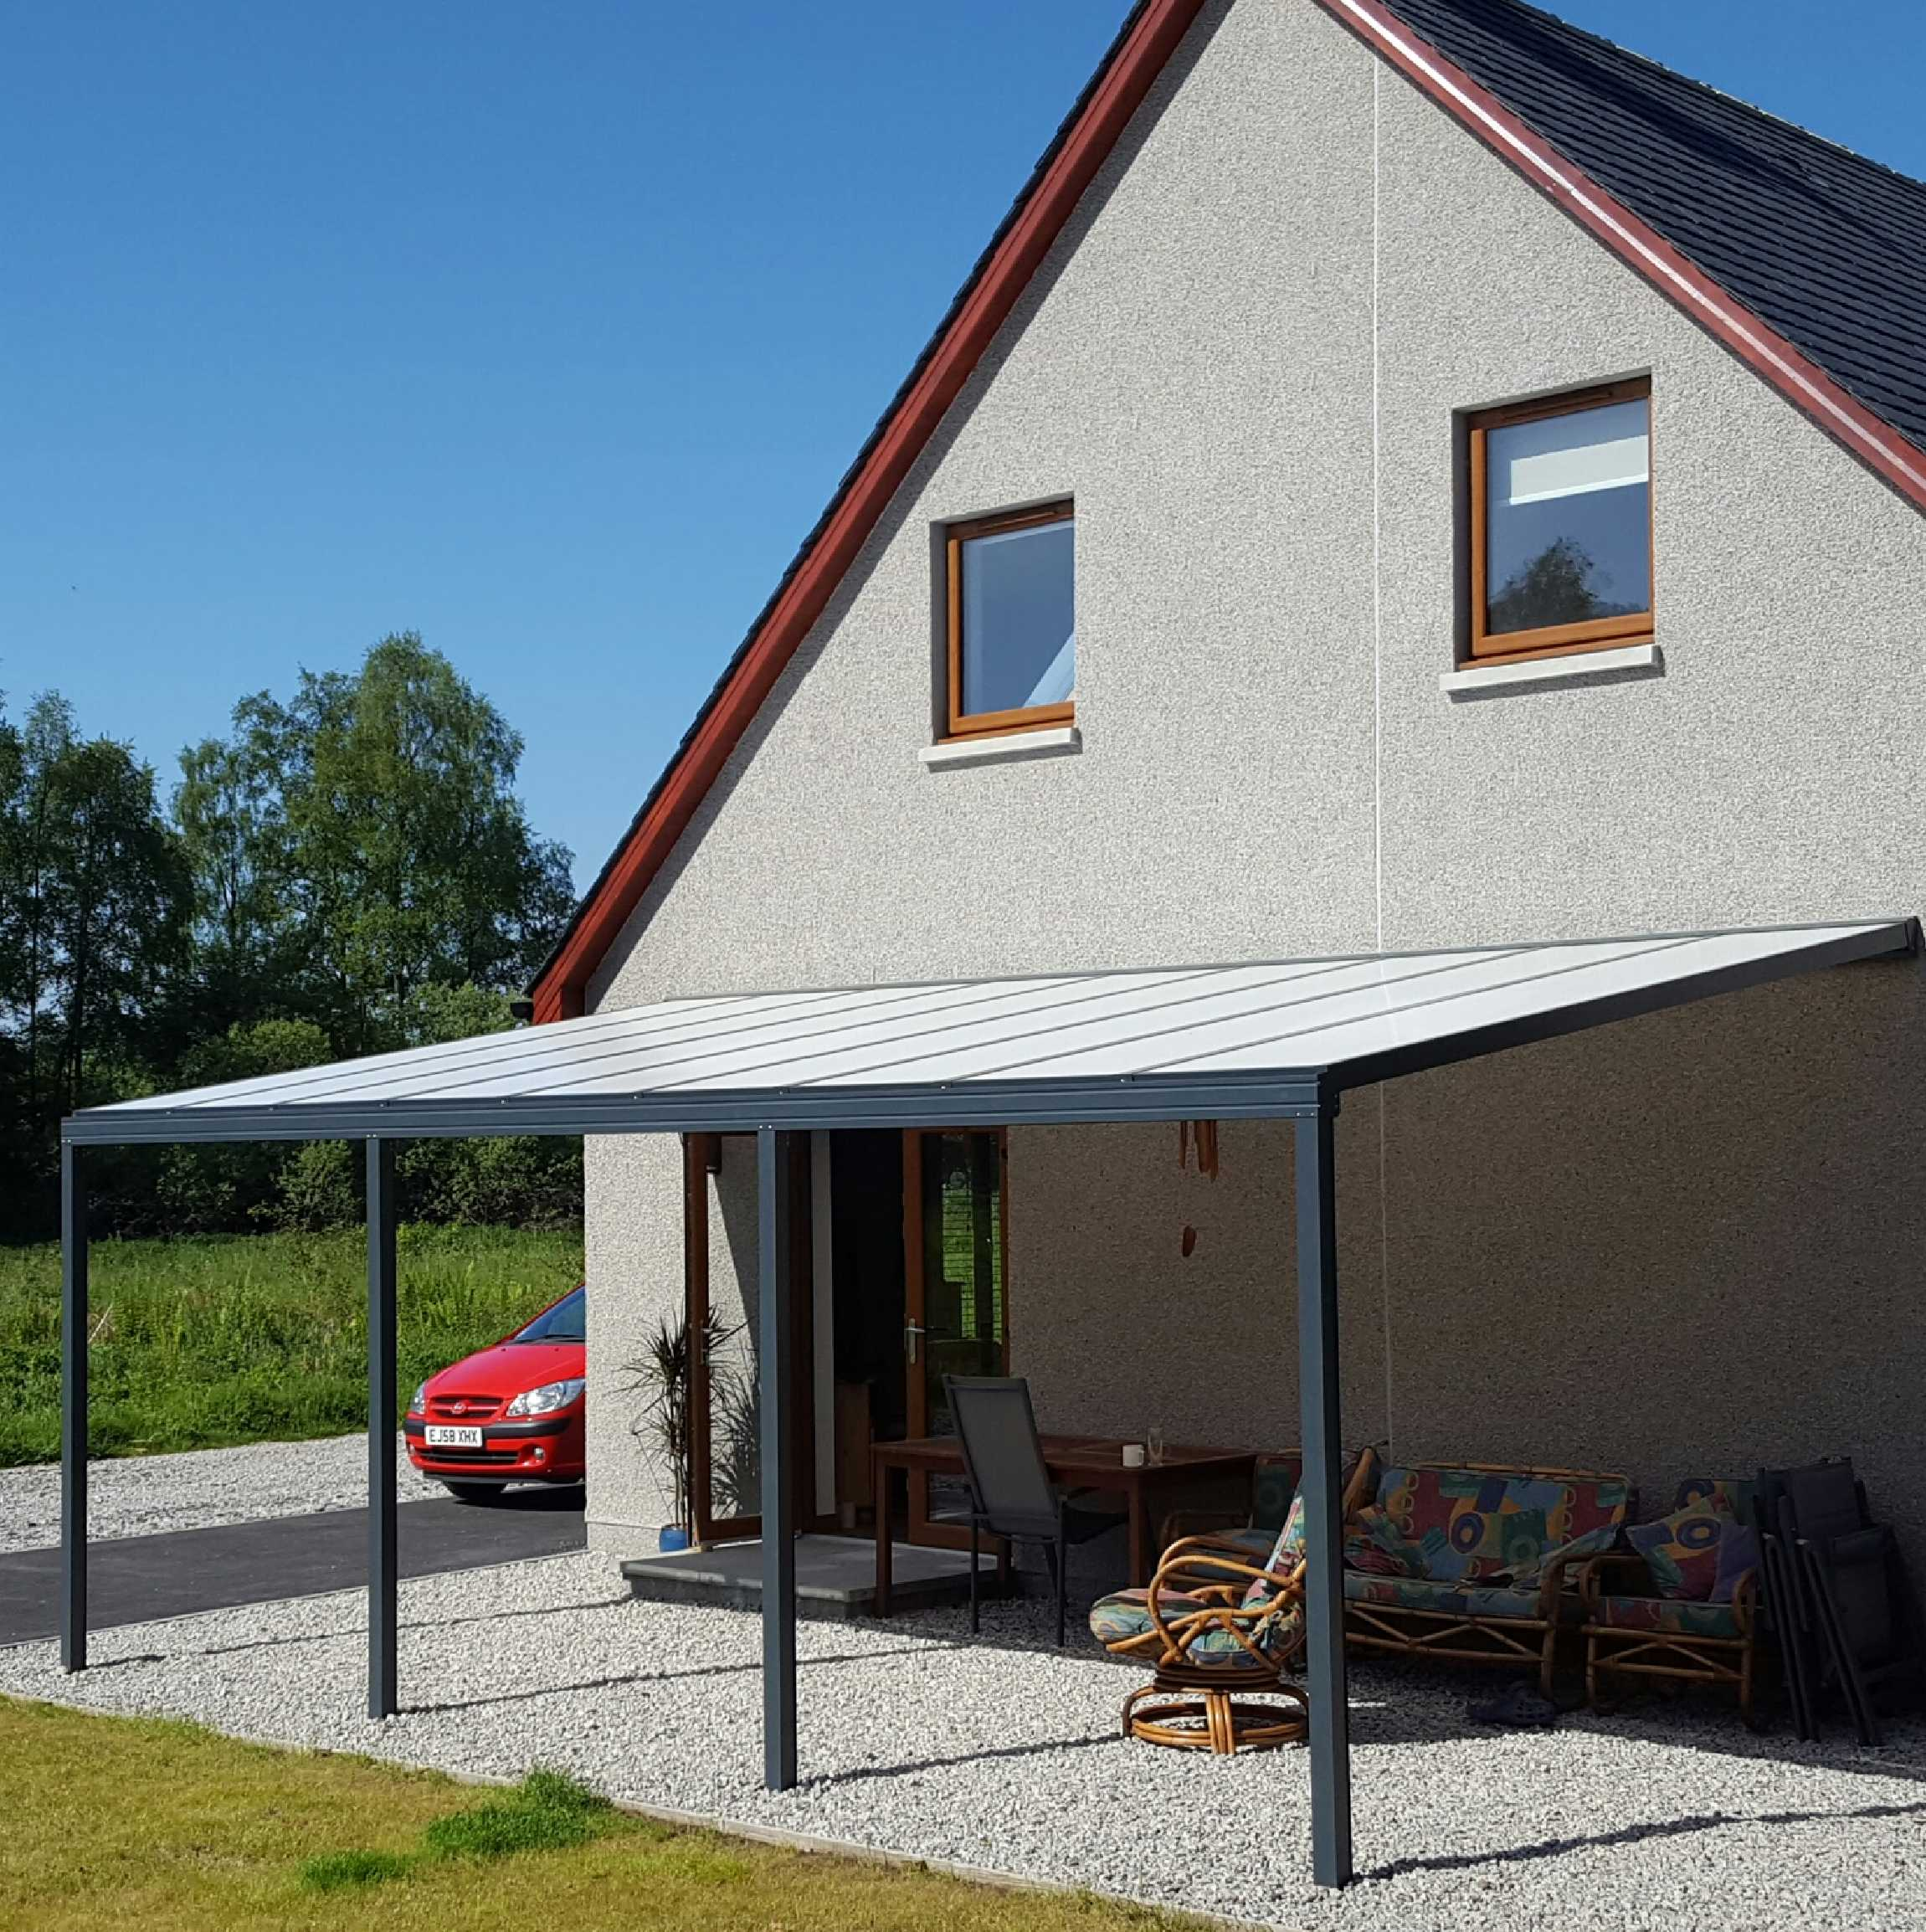 Great selection of Omega Smart Lean-To Canopy, Anthracite Grey, 16mm Polycarbonate Glazing - 7.4m (W) x 2.0m (P), (4) Supporting Posts